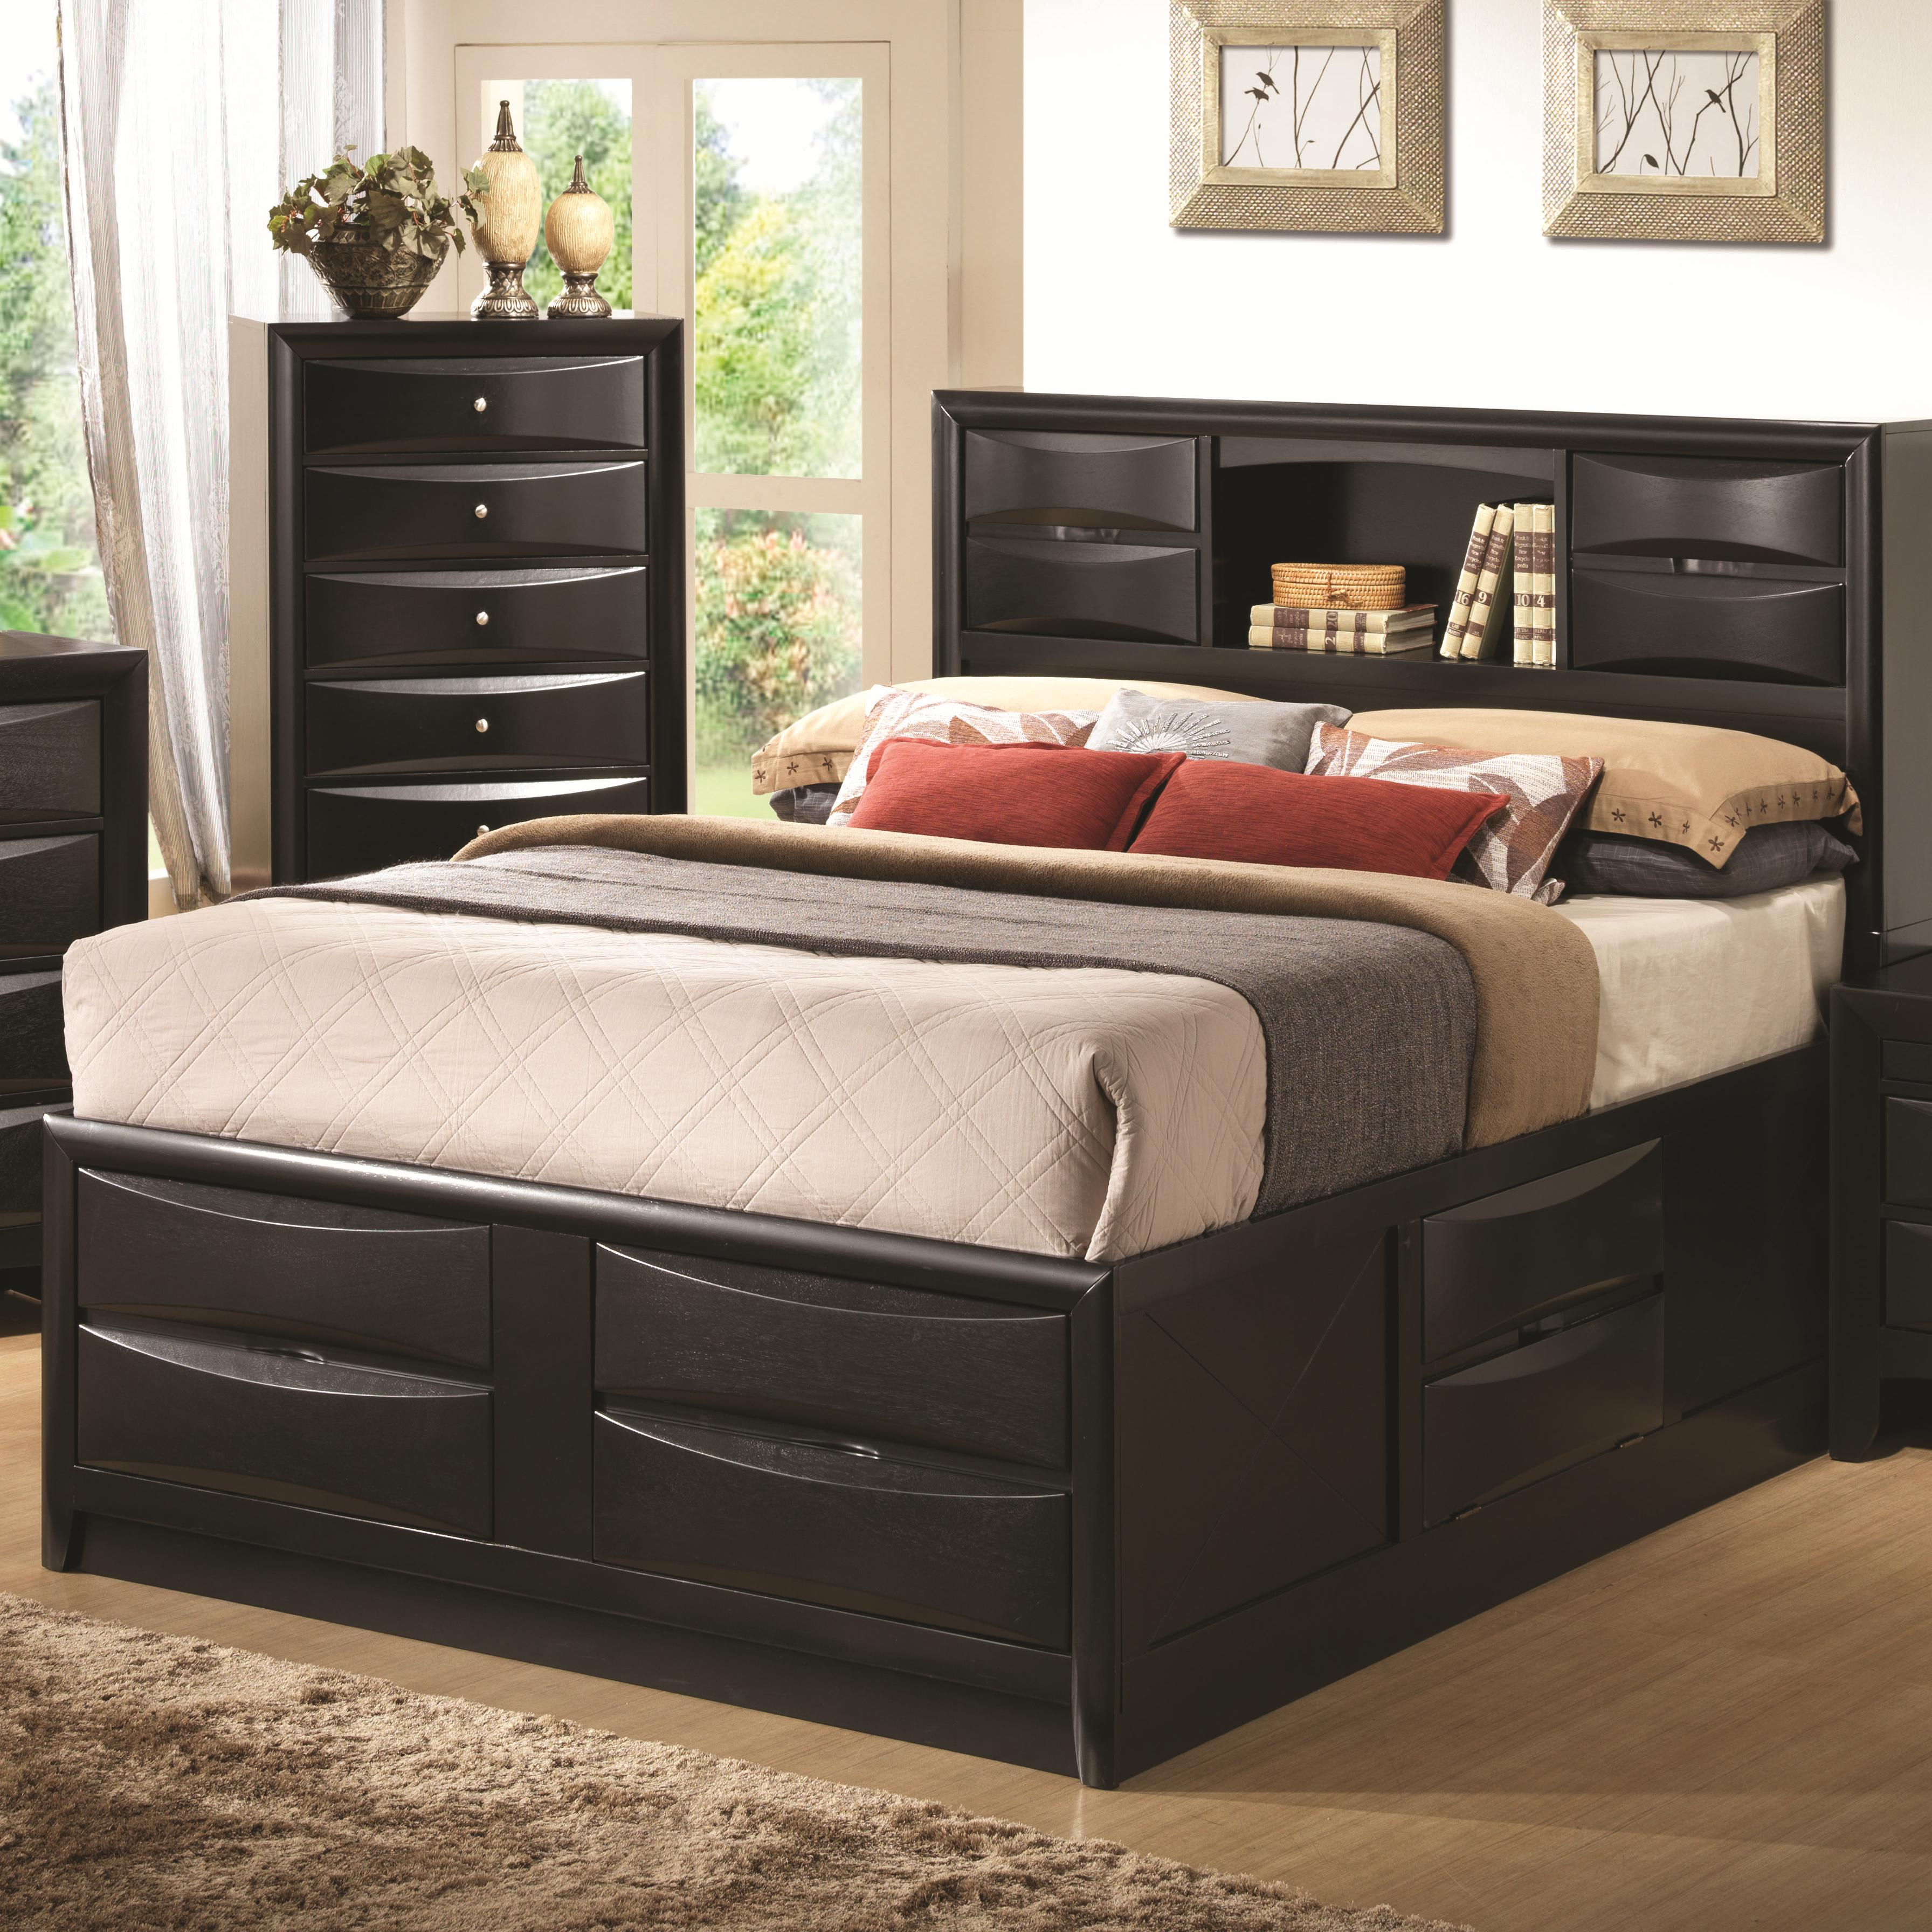 Briana Queen Storage Bed by Coaster at Northeast Factory Direct